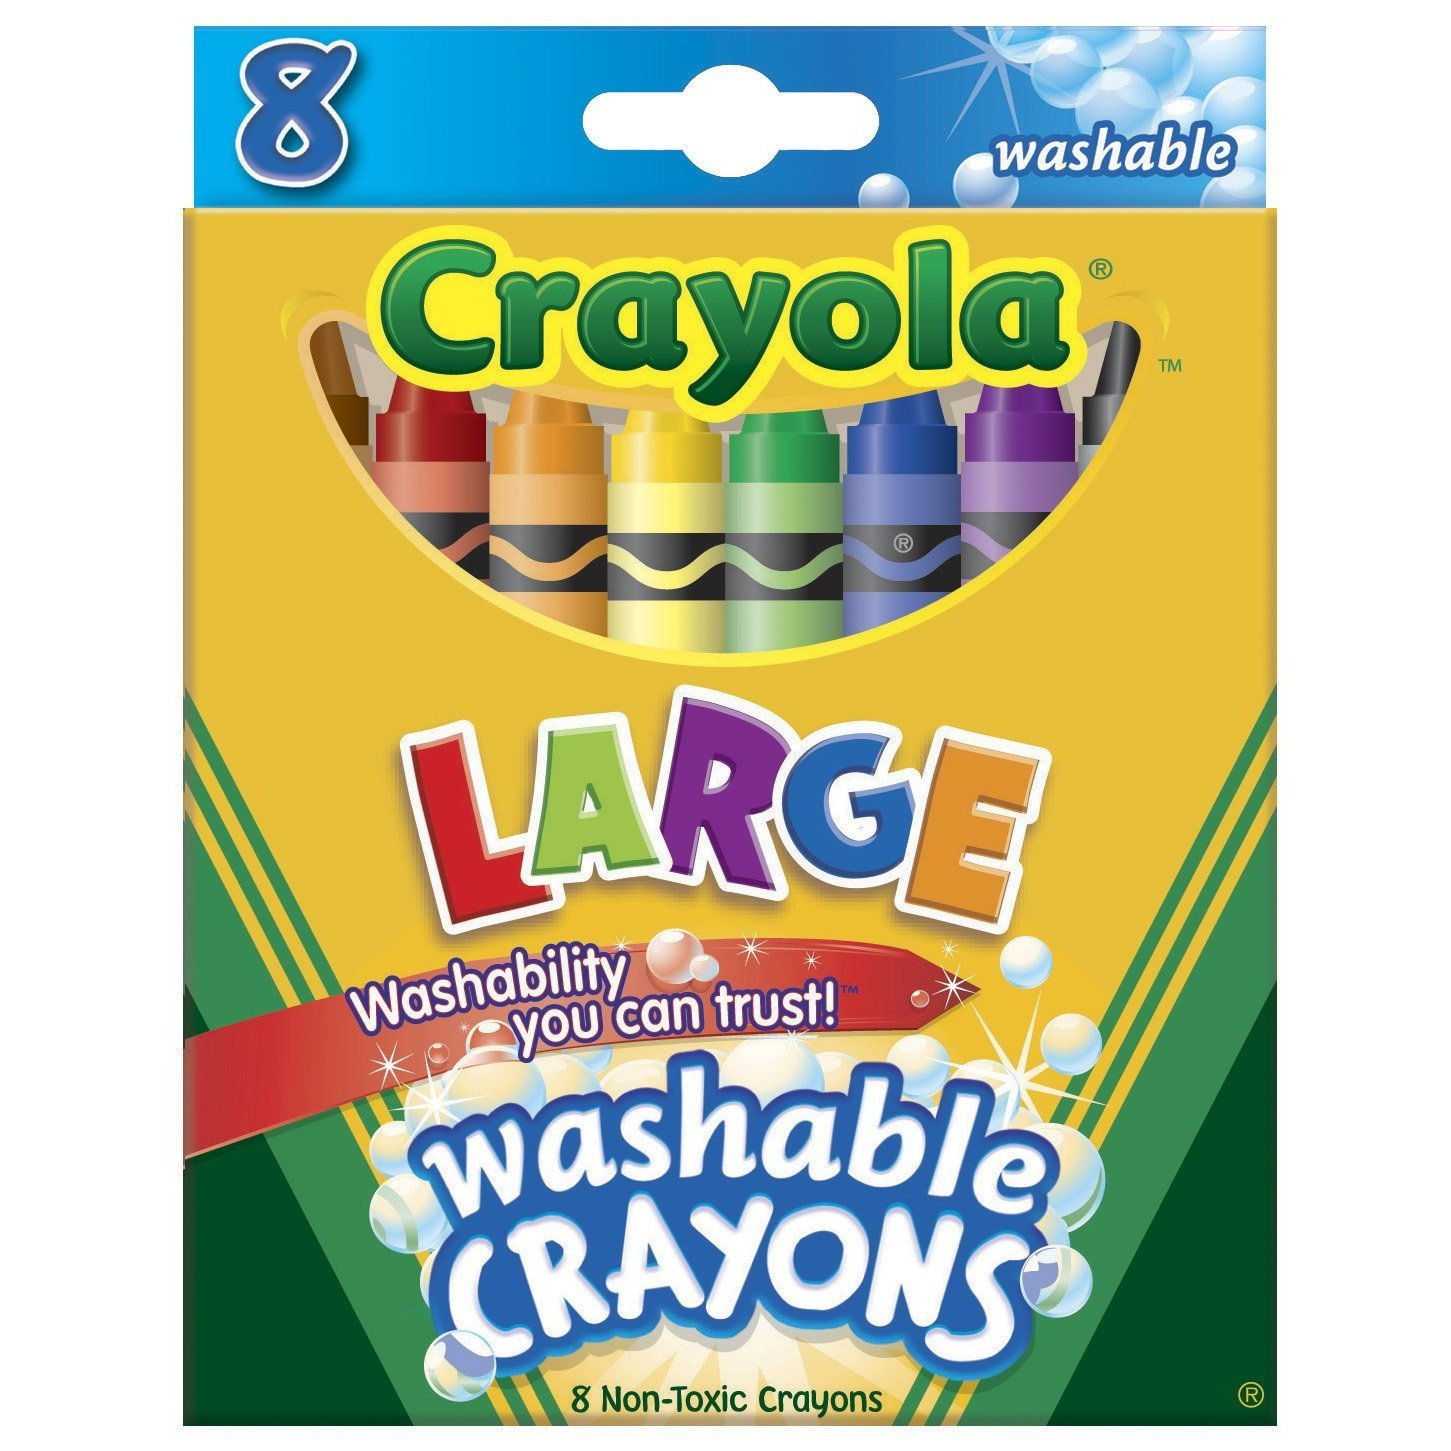 Crayola Crayons Kids First Large Washable 8 In A Box (Pack of 12) 96 Crayons Total by Crayola